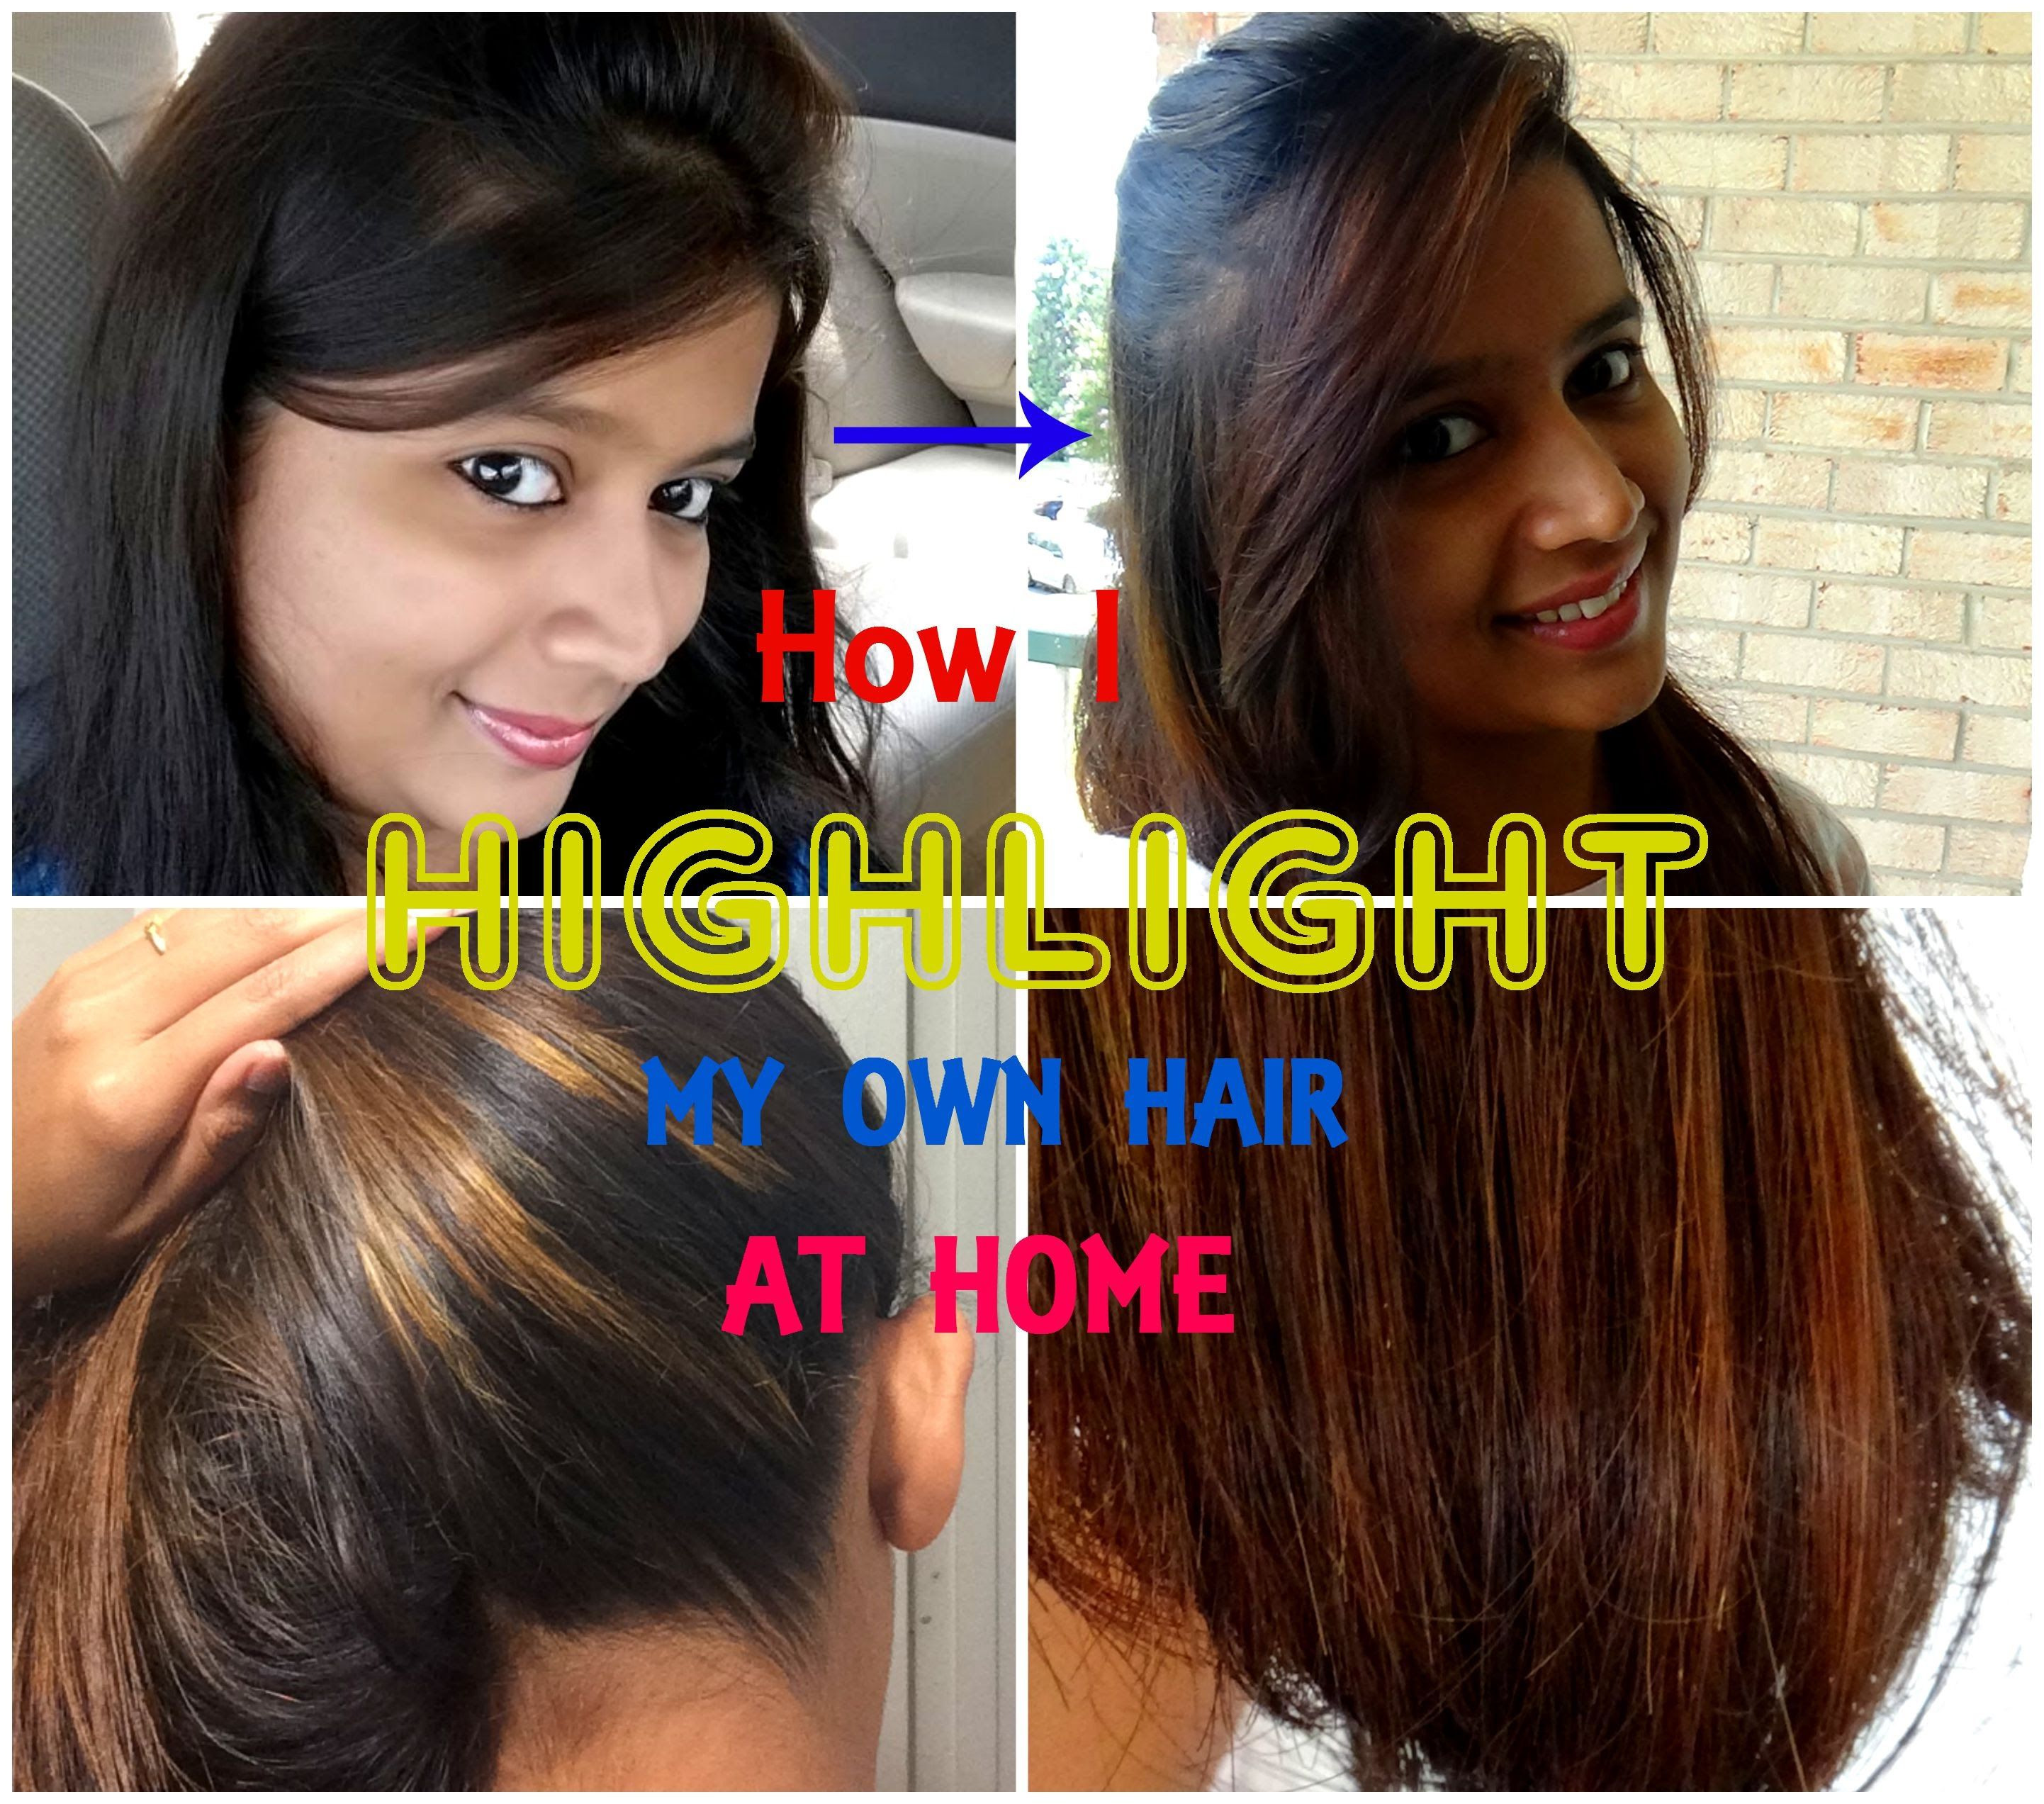 How To Highlight Your Own Hair At Home With Garnier Nutrisse Sensationalsupriya Youtu Highlight Your Own Hair Garnier Hair Color Black Hair With Highlights